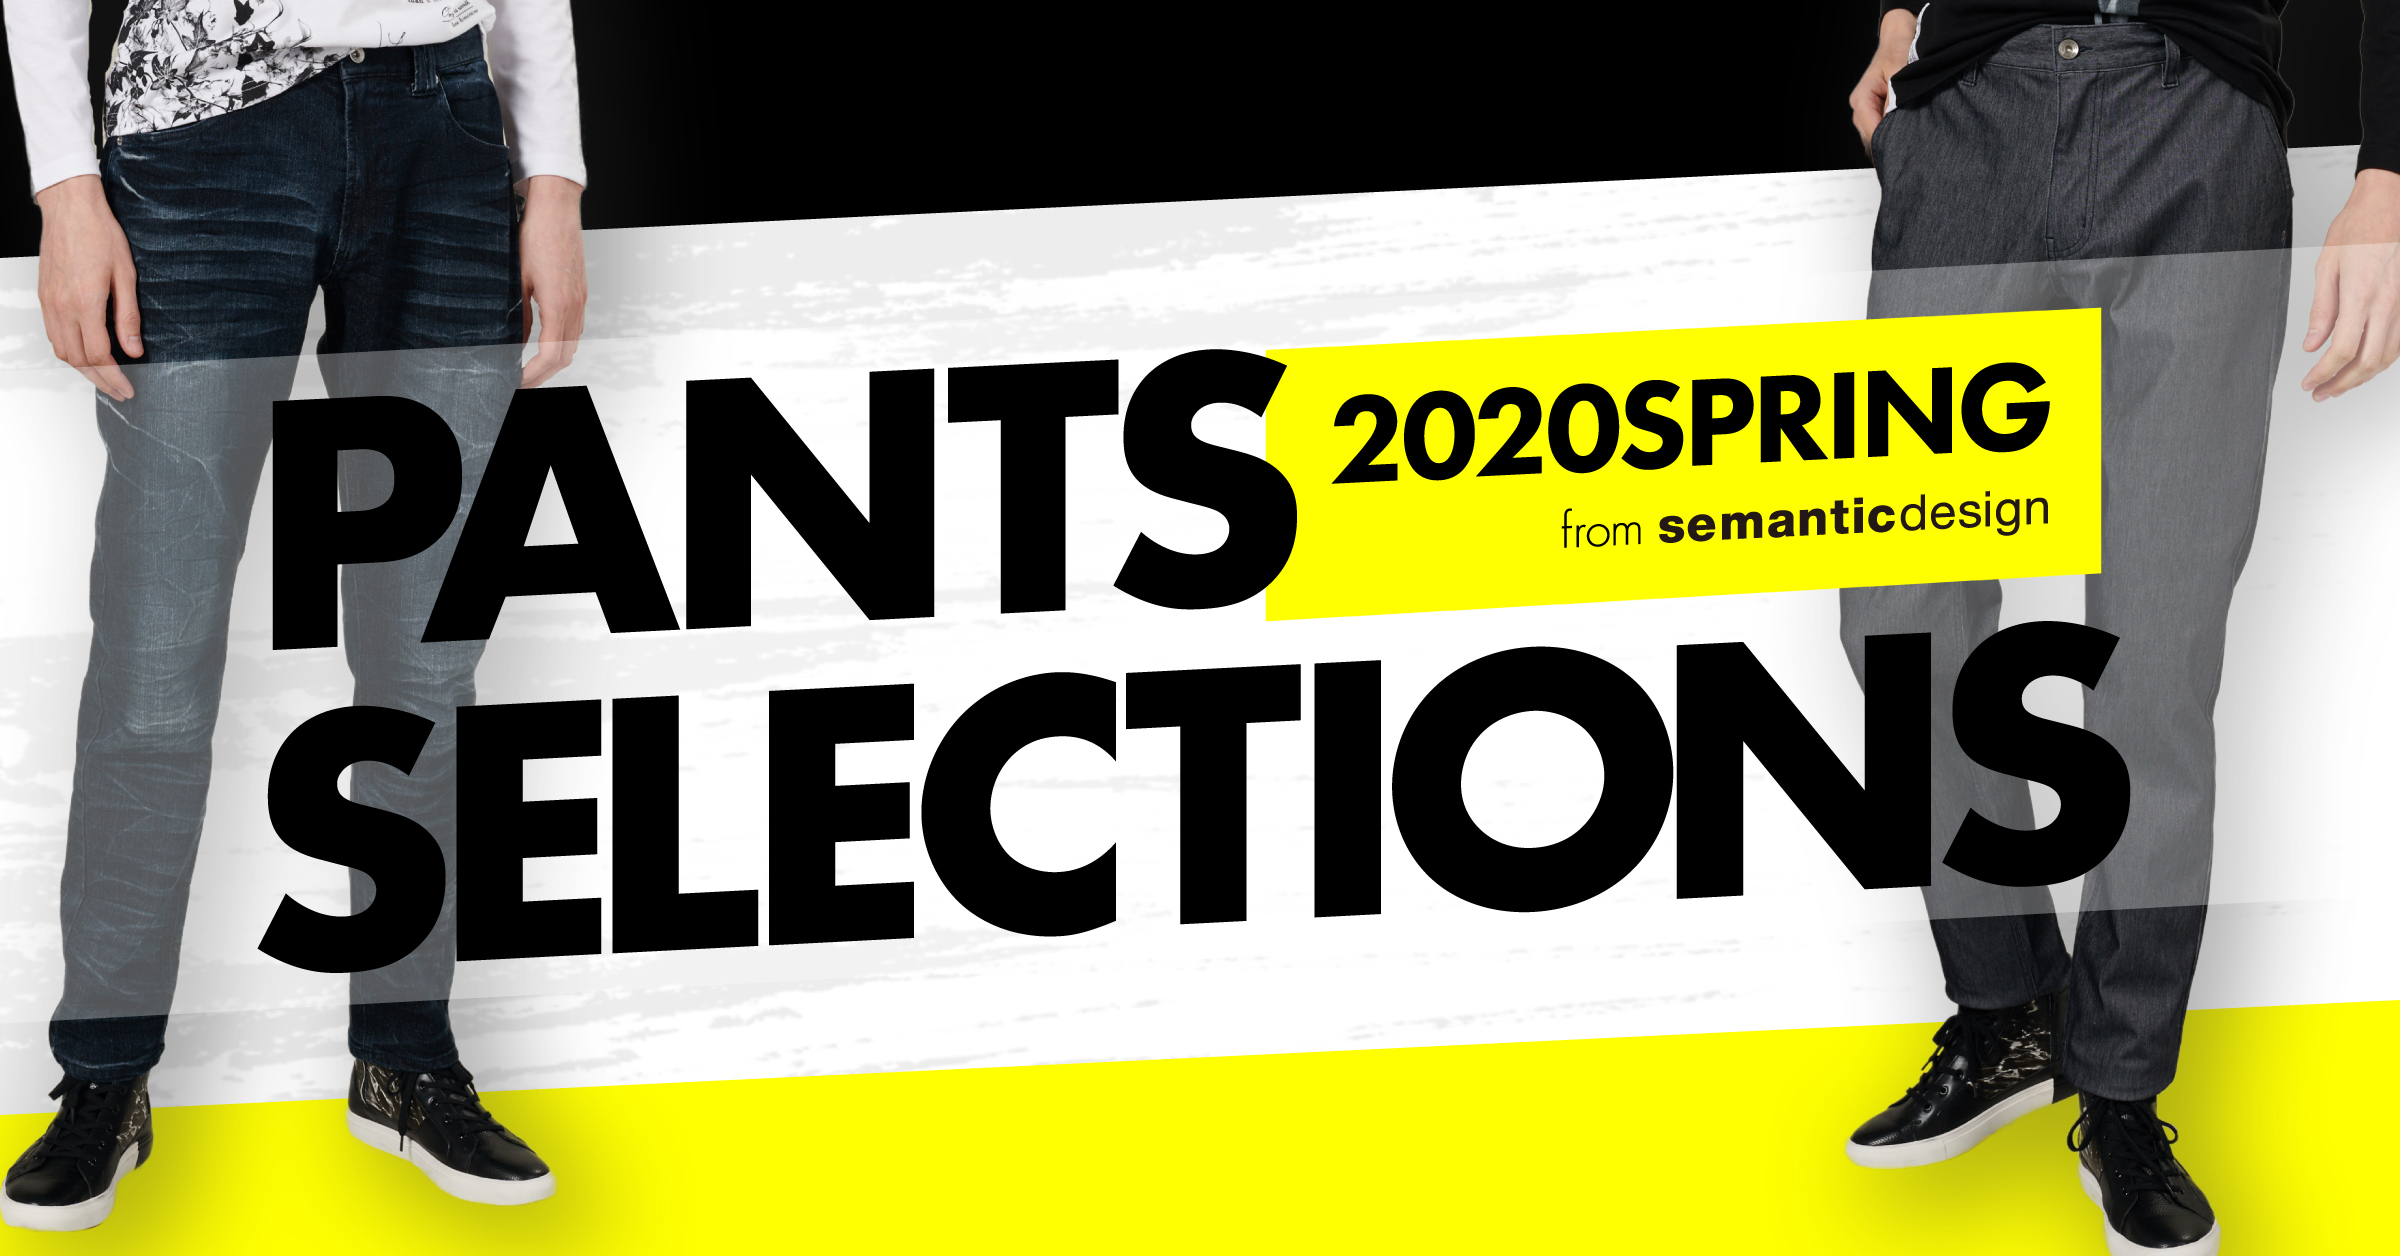 PantsSelections 2020spring from semantic design